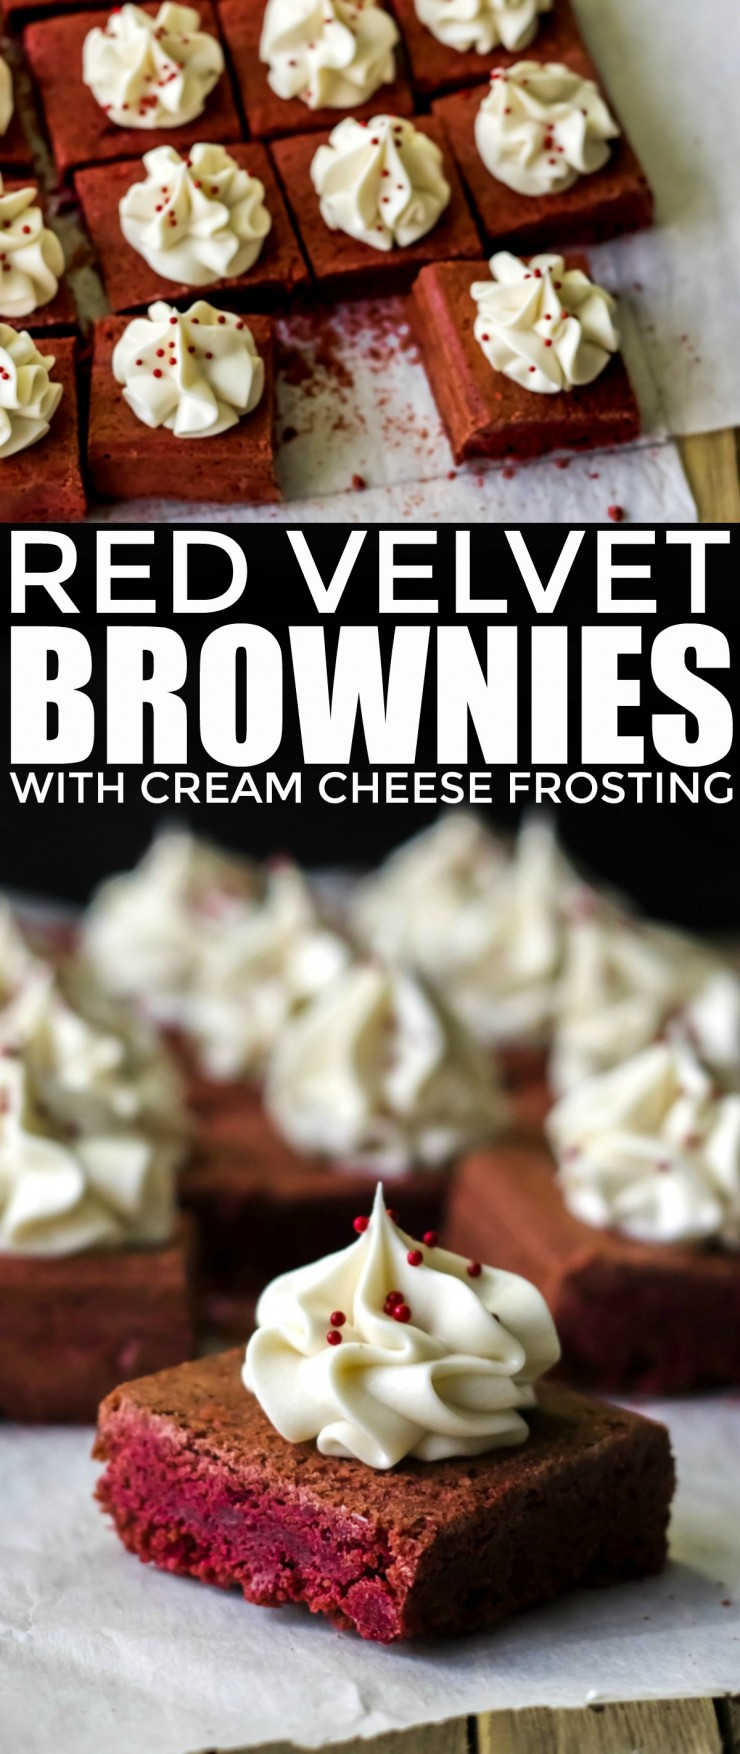 These Red Velvet Brownies with Cream Cheese Frosting combine the flavours of red velvet cake with a brownie to create an incredible brownie topped with a delectable cream cheese frosting.